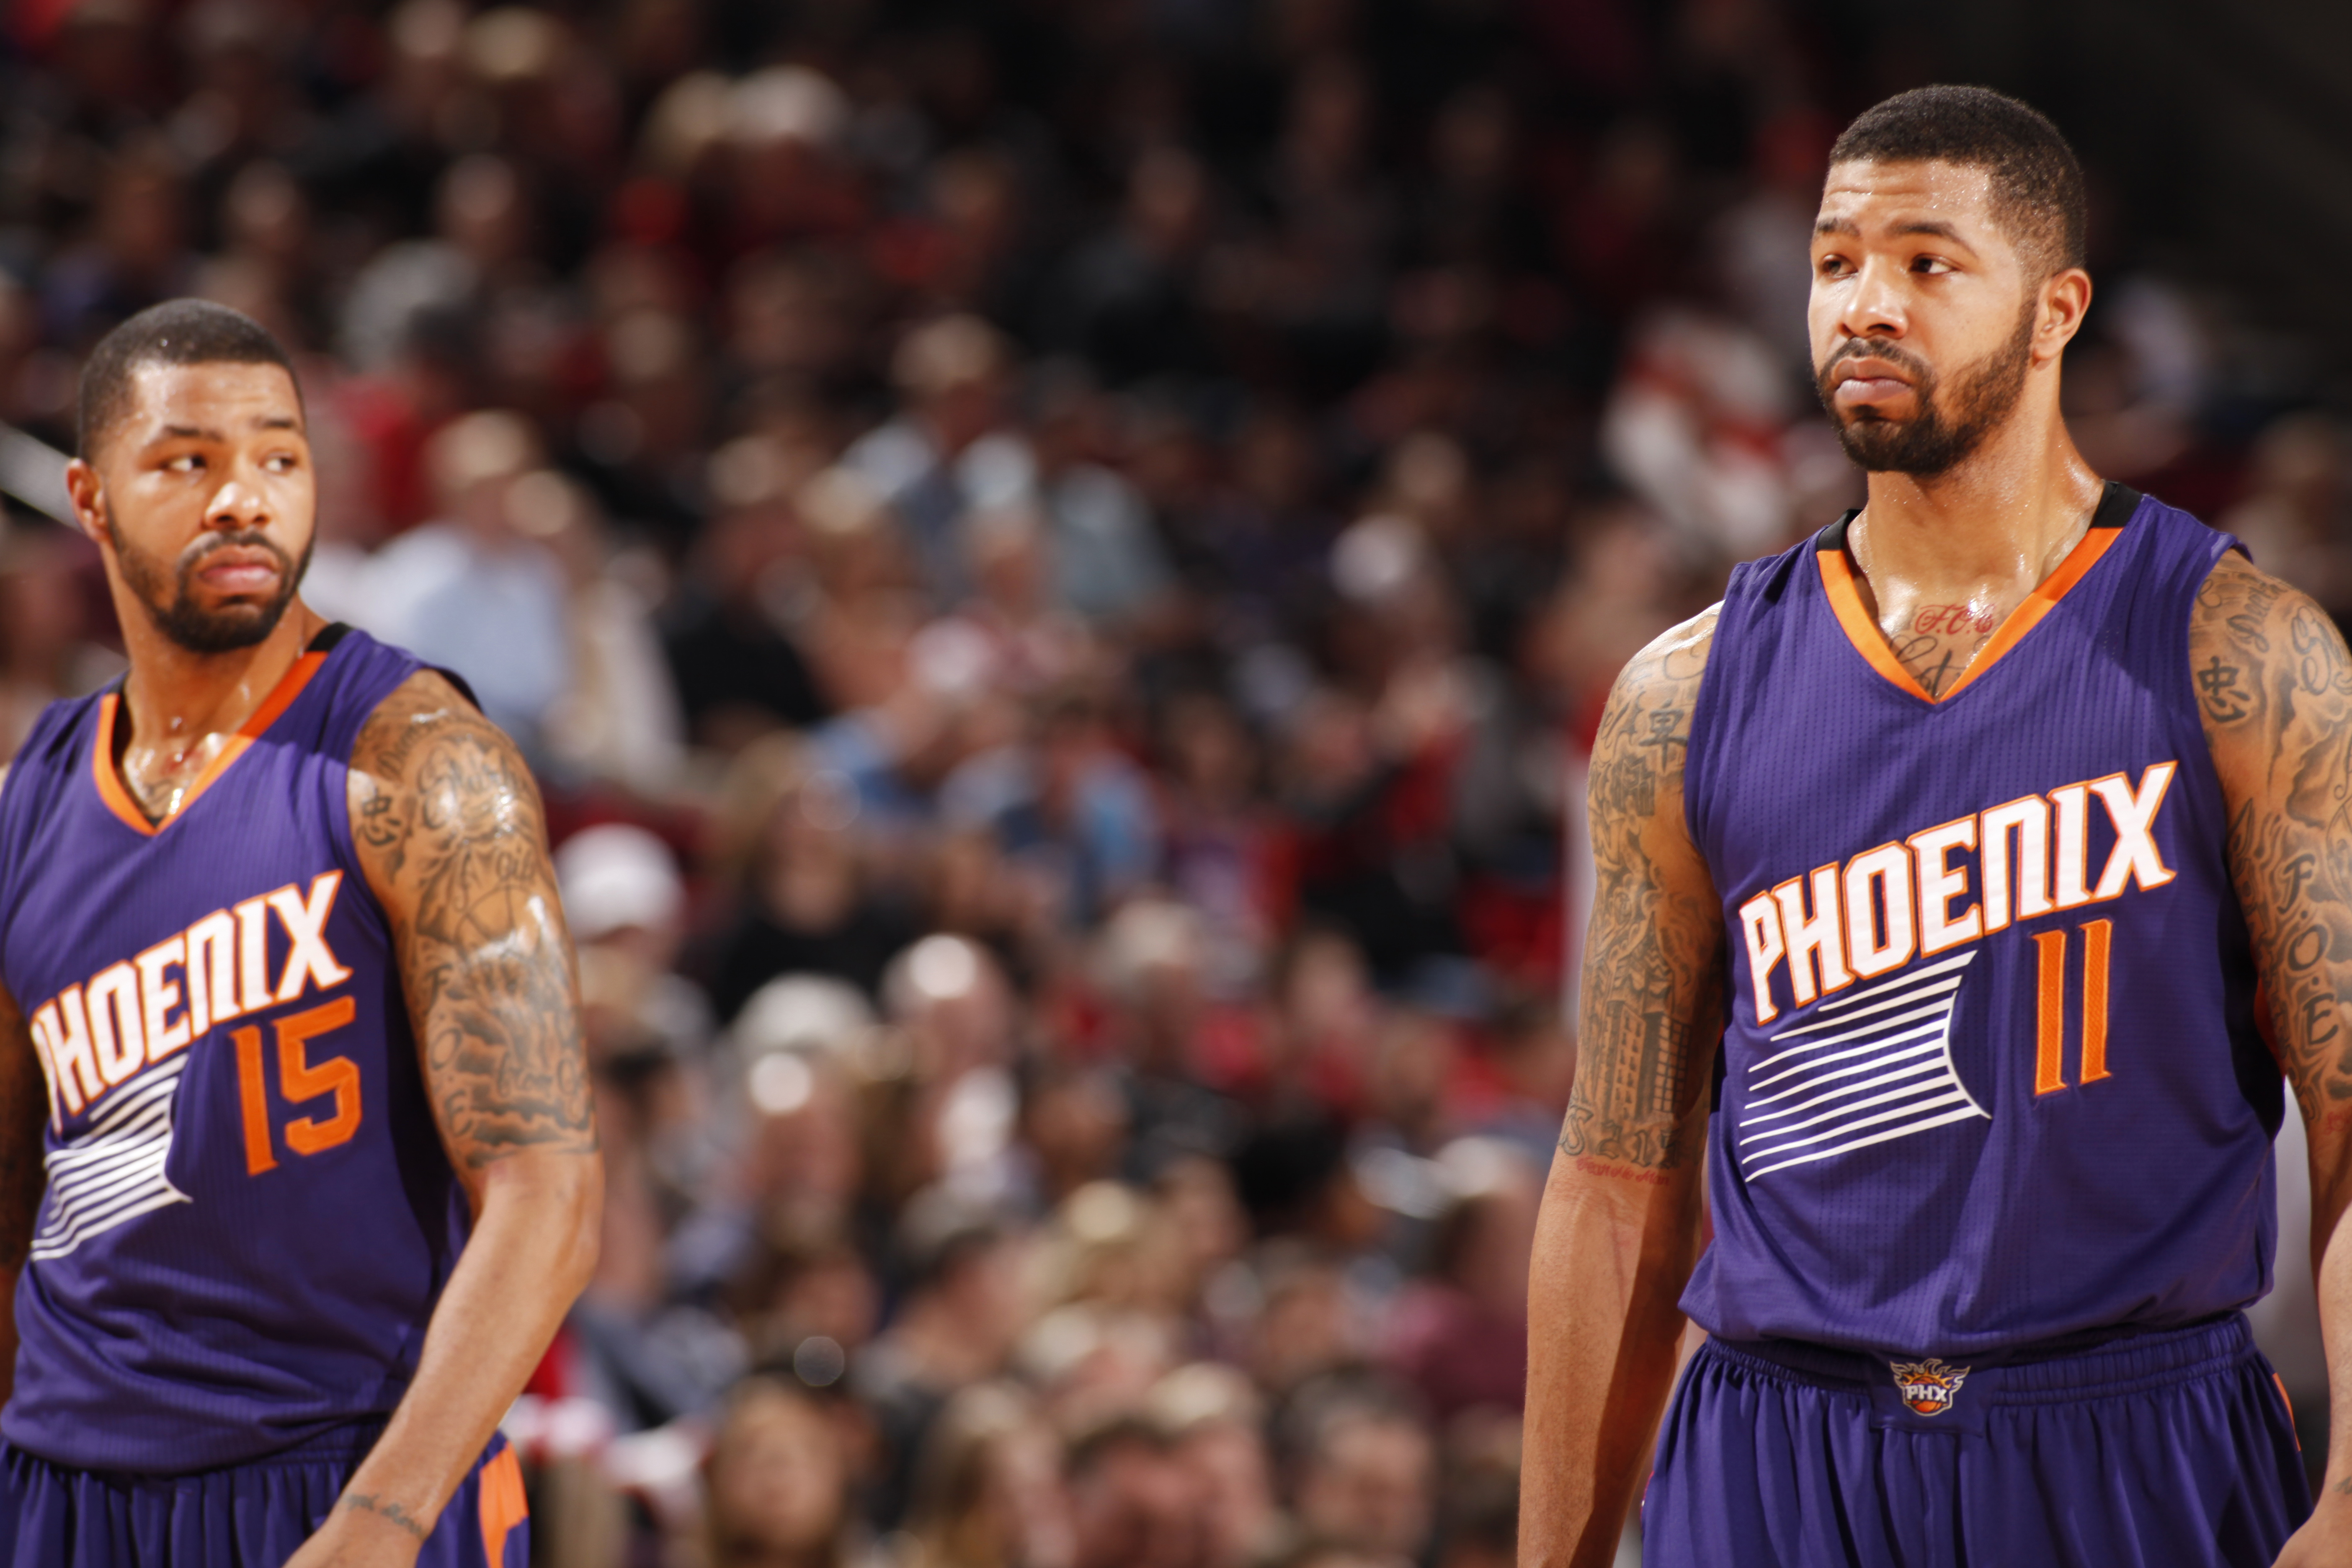 PORTLAND, OR - MARCH 30: Marcus Morris #15 and Markieff Morris #11 of the Phoenix Suns during the game against the Portland Trail Blazers on March 30, 2015 at Moda Center in Portland, Oregon. (Photo by Cameron Browne/NBAE via Getty Images)